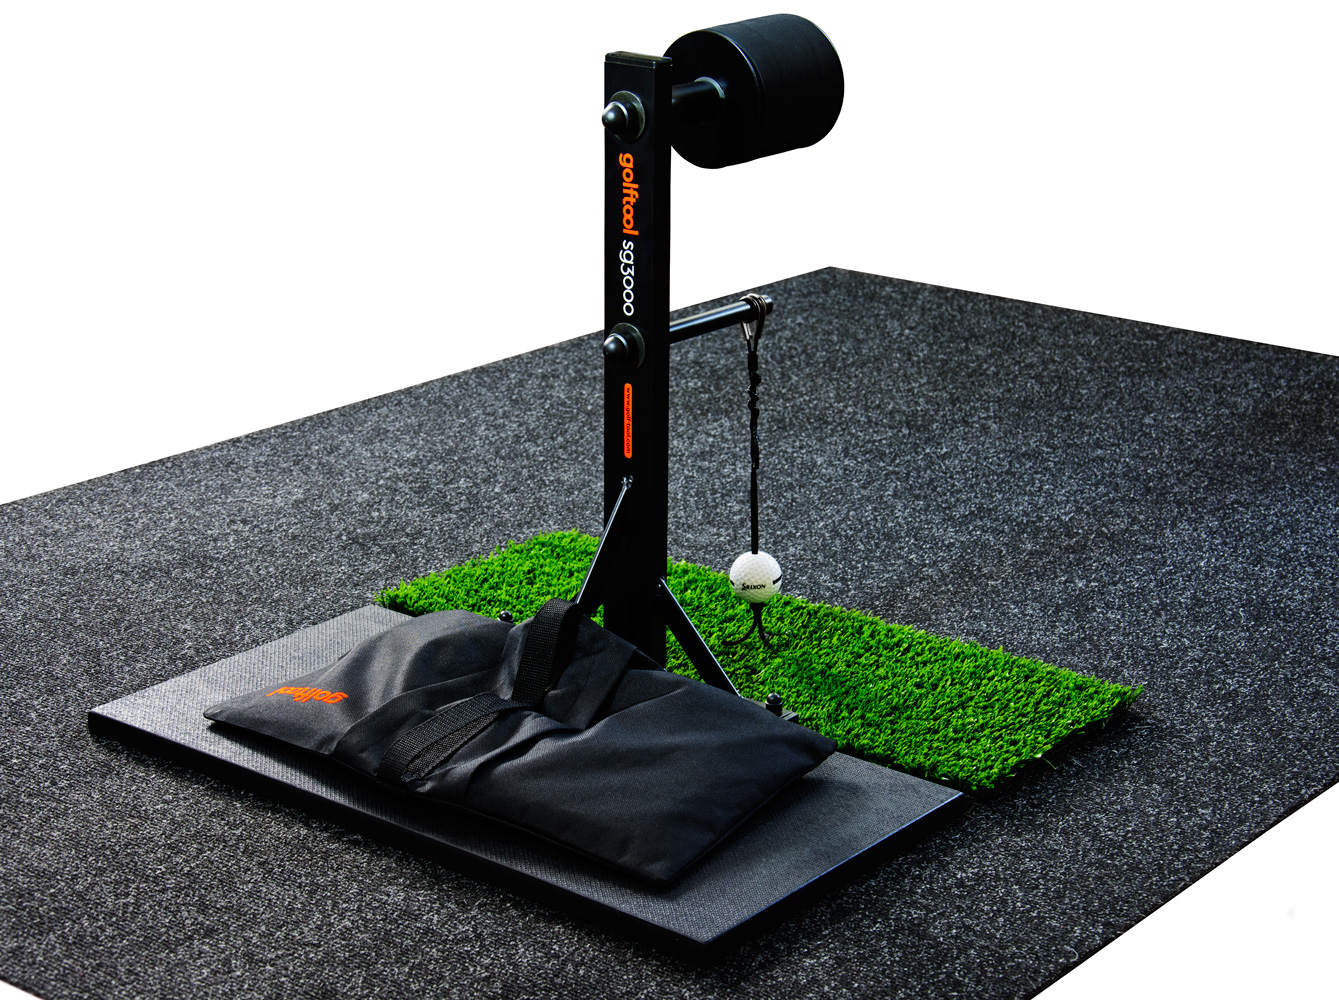 GOLFTOOL sg3000 with Carpet mat (US, Canada and Europe only)